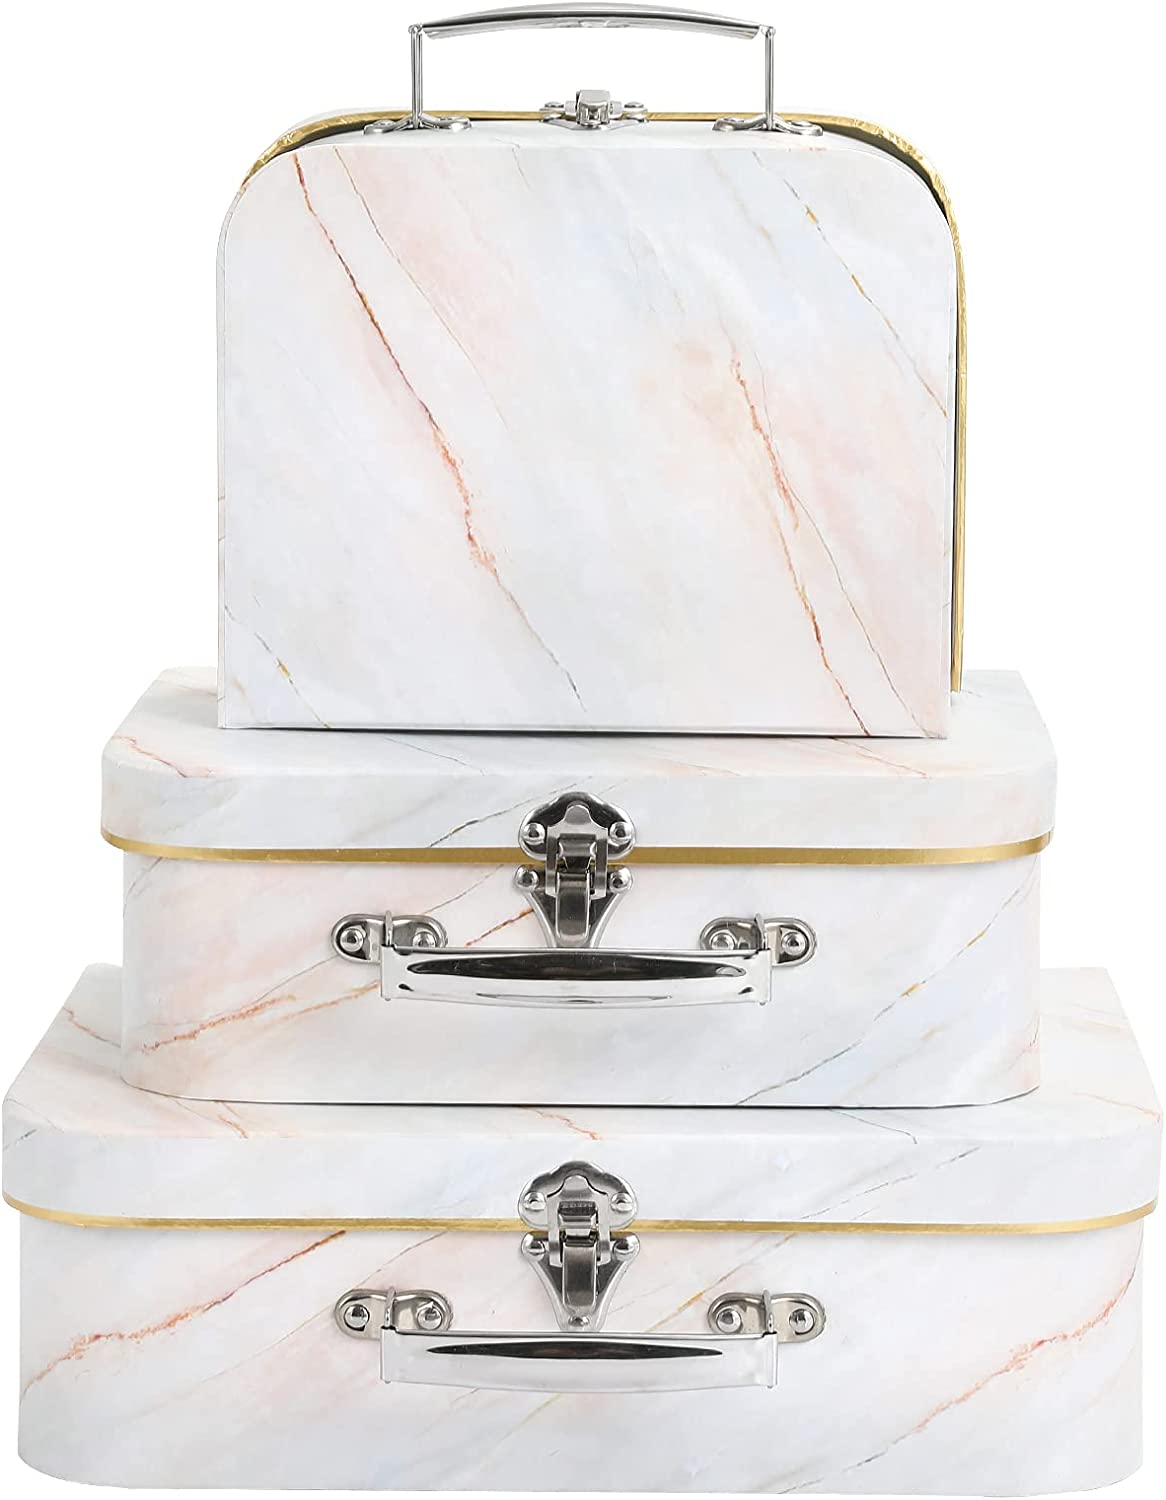 Anndason Set of 3 Paperboard Suitcases Storage Box Decorative Storage Boxes Storage Gift Boxes With Lids for Photo Storage Home Decoration, Wedding, Birthday, Anniversary and New Year Gift Decoration (3Pcs, Champagne Marble)